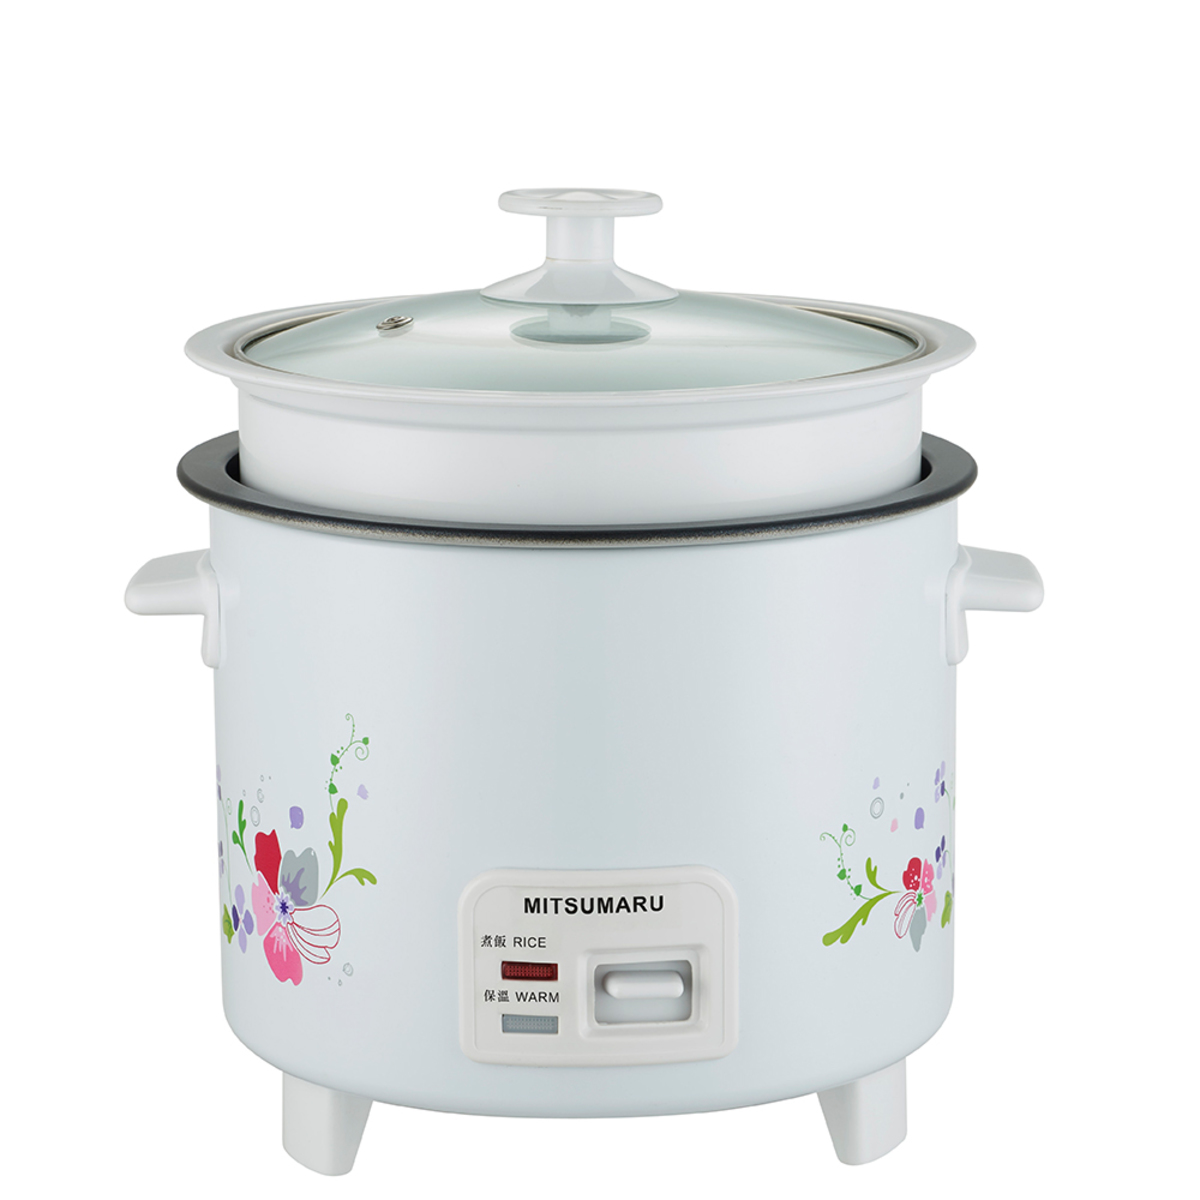 MC-501 (1.0L) Simple Rice Cooker